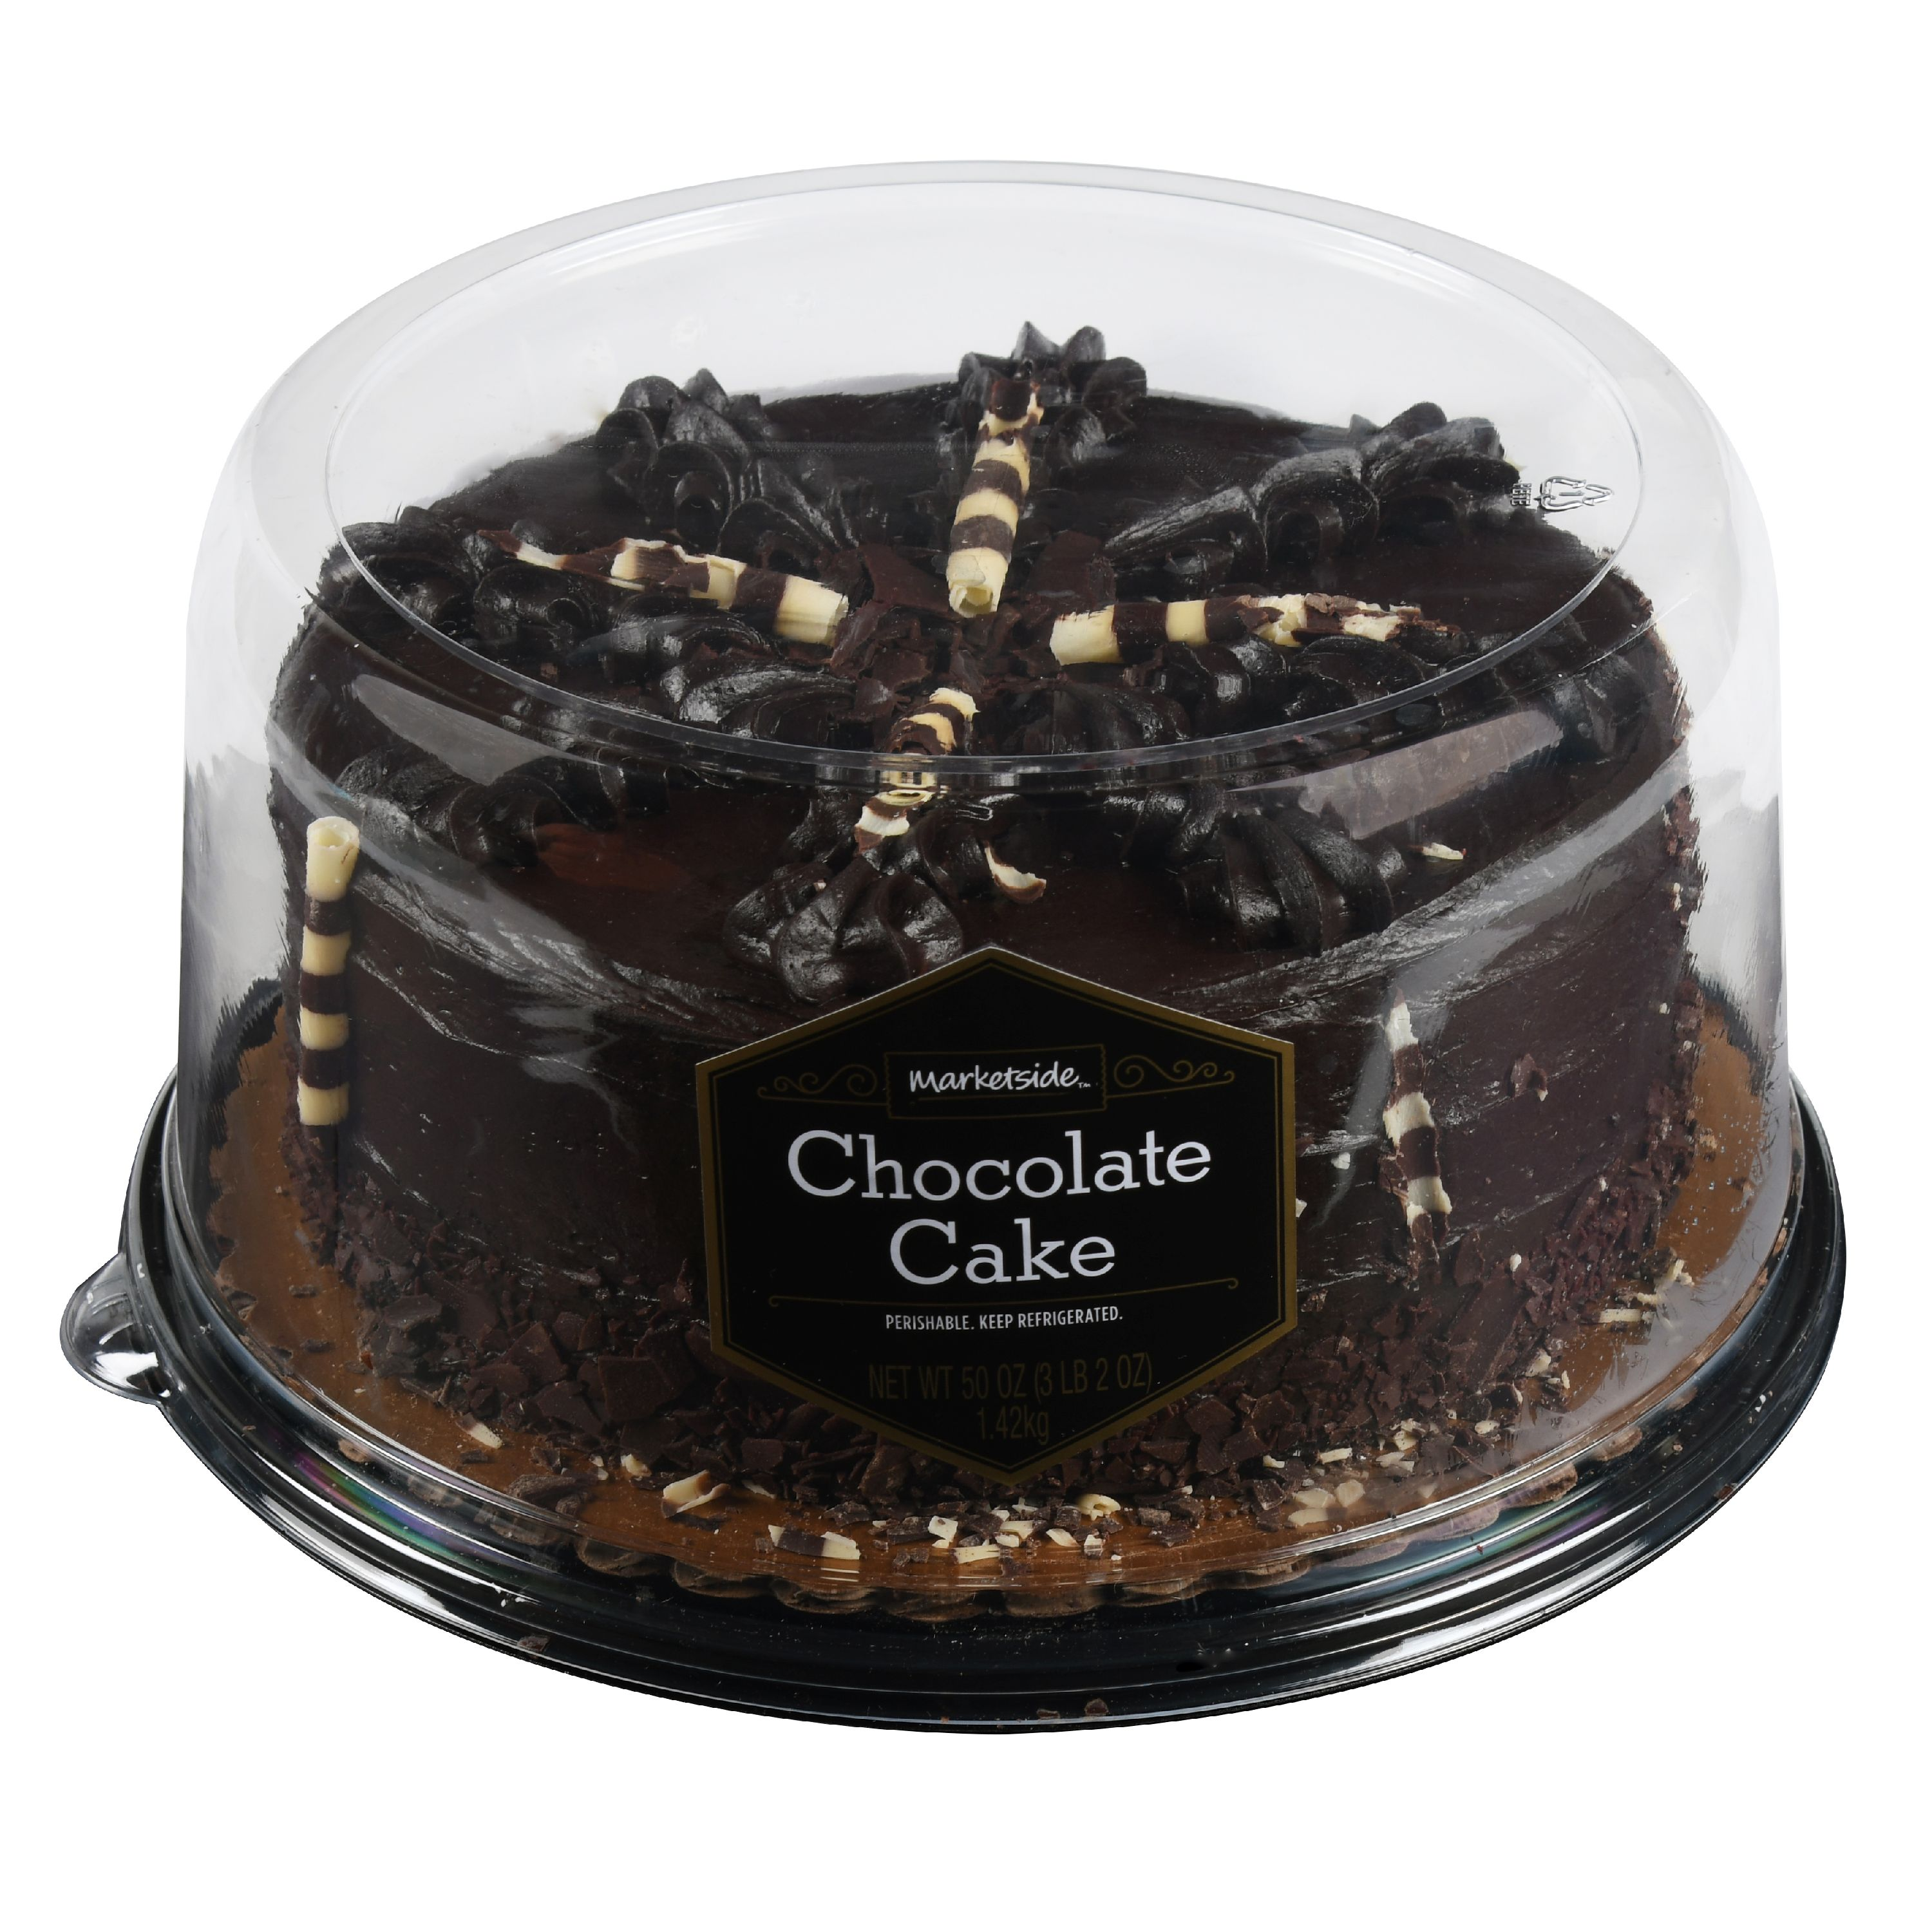 Marketside Ultimate Chocolate Ganache Cake, 50 oz